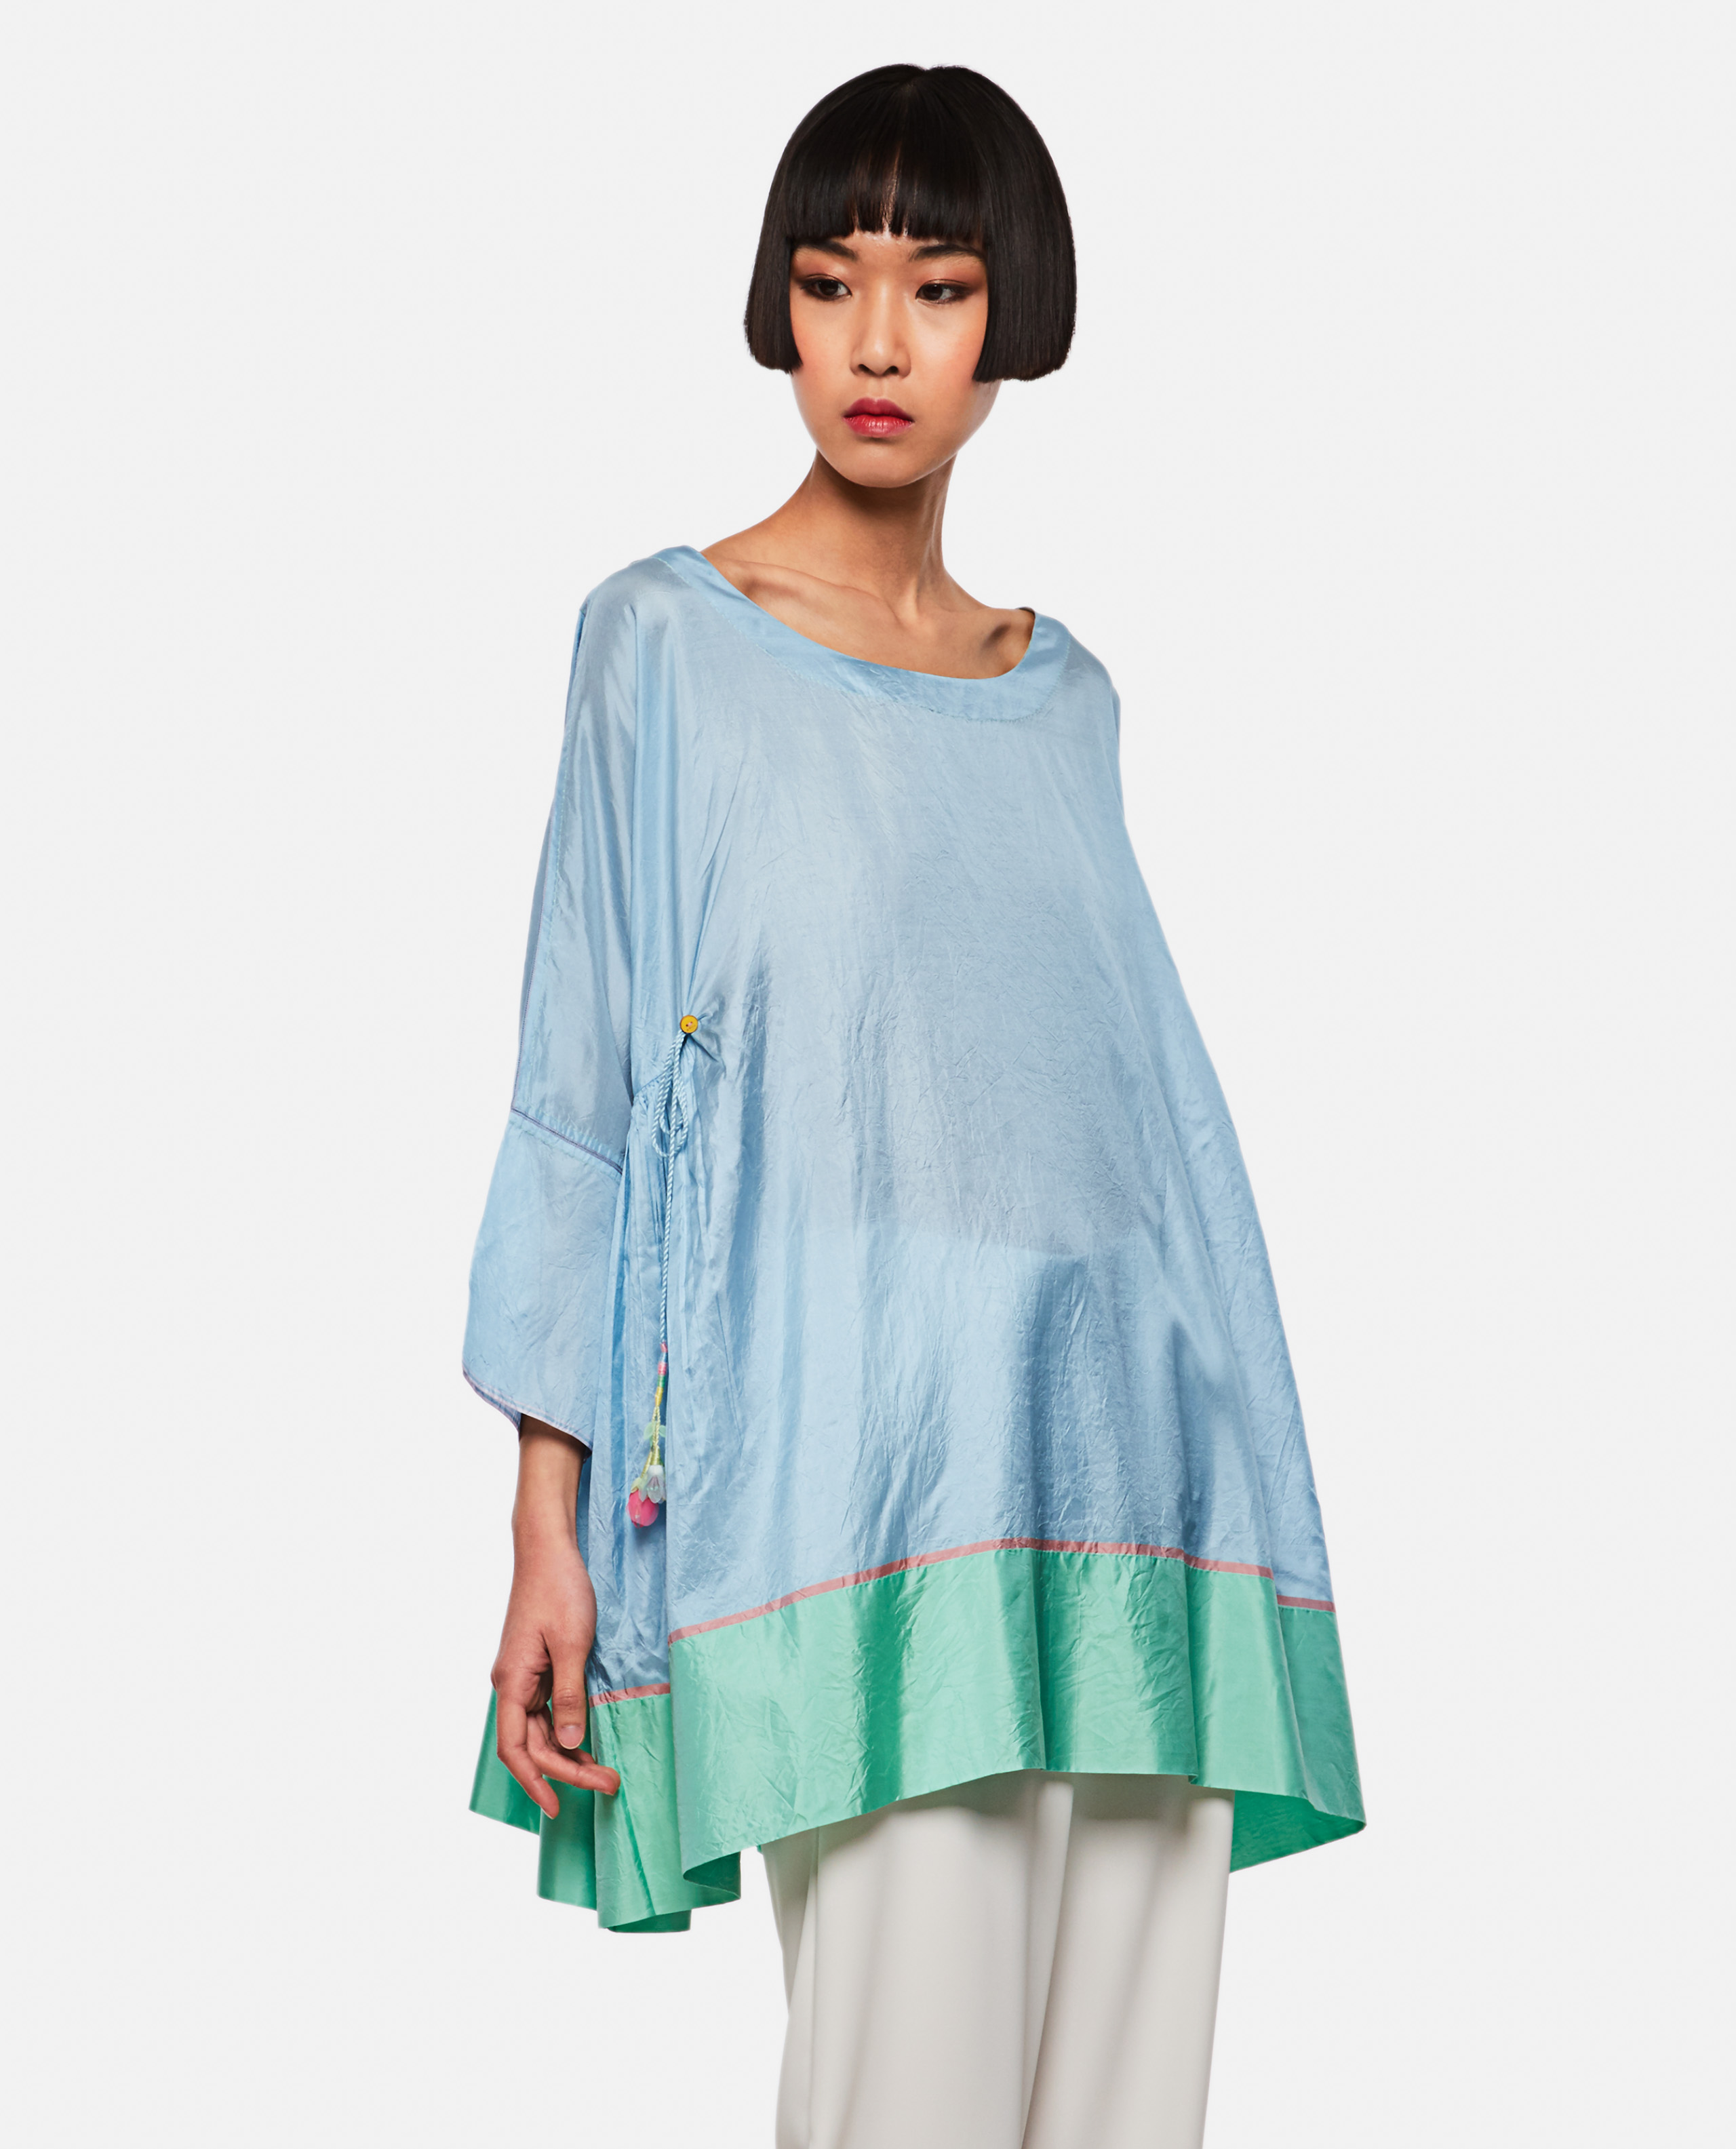 Image of Cotton blouse